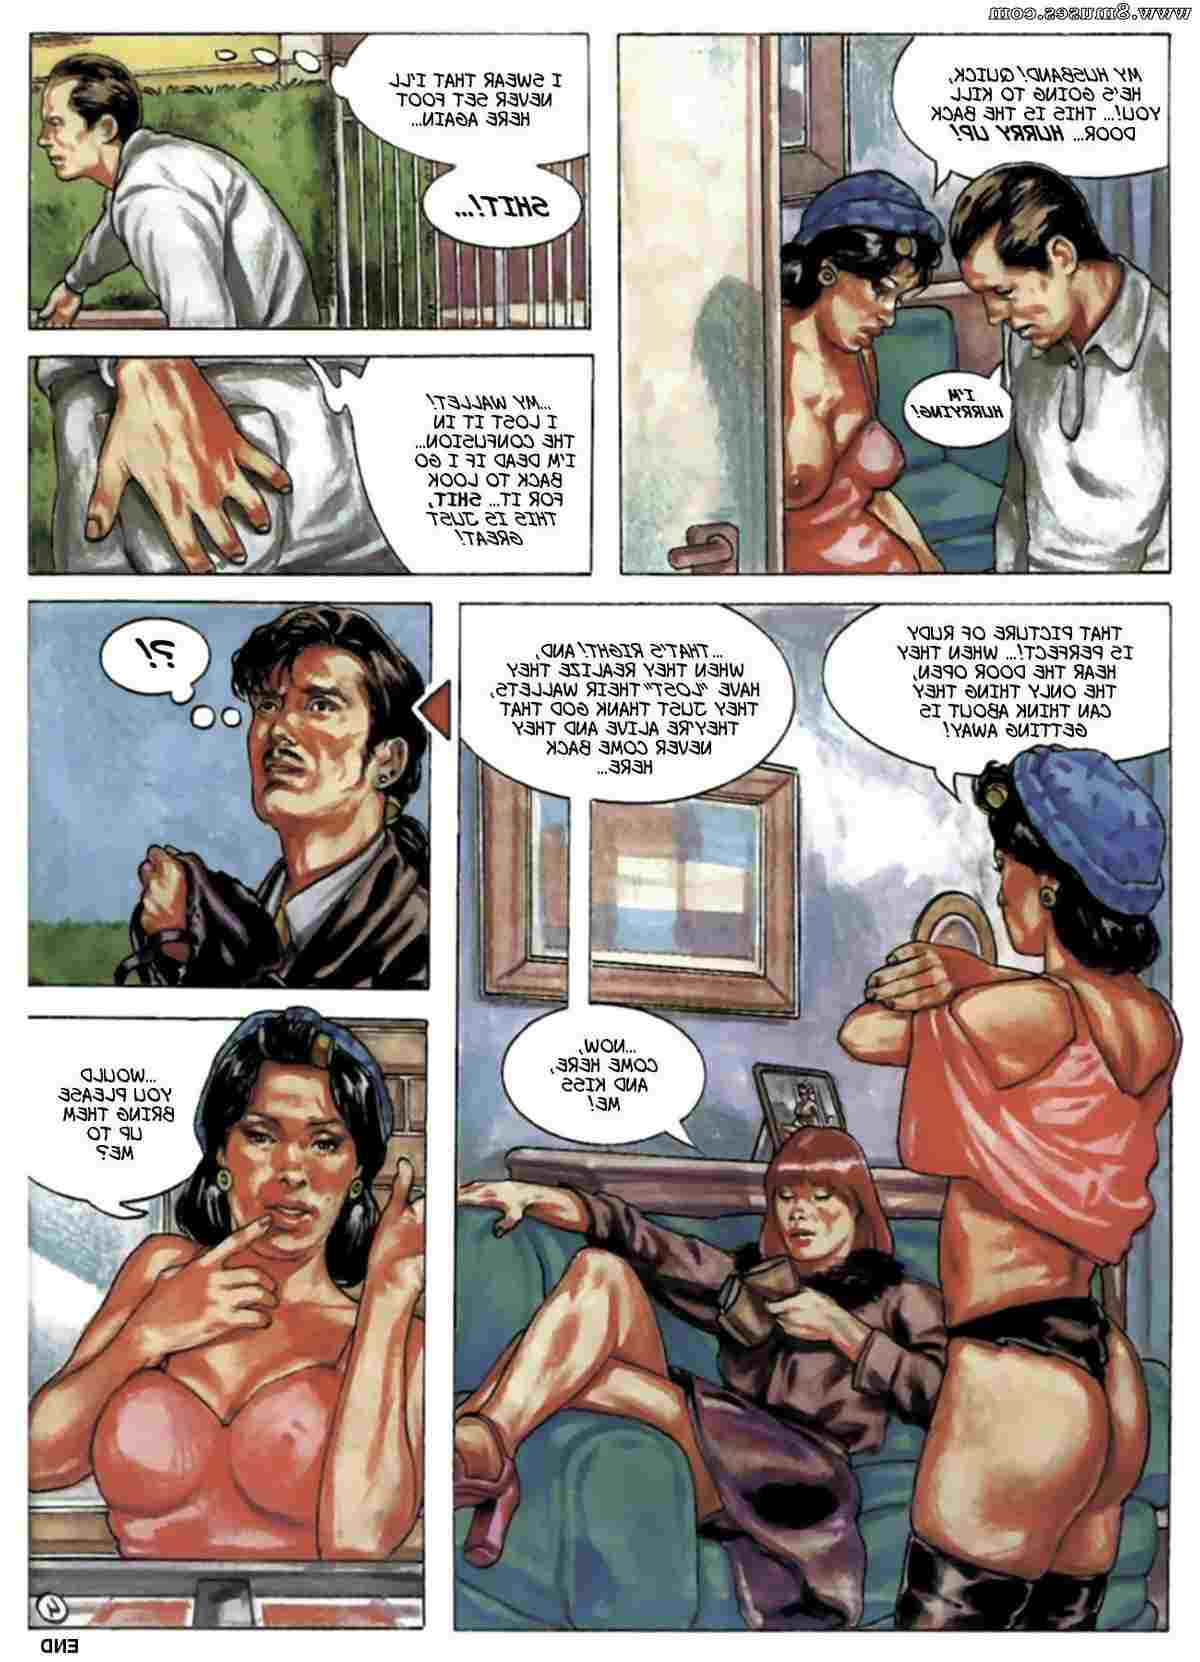 Selen-Comics/Beloved-Submission Beloved_Submission__8muses_-_Sex_and_Porn_Comics_6.jpg